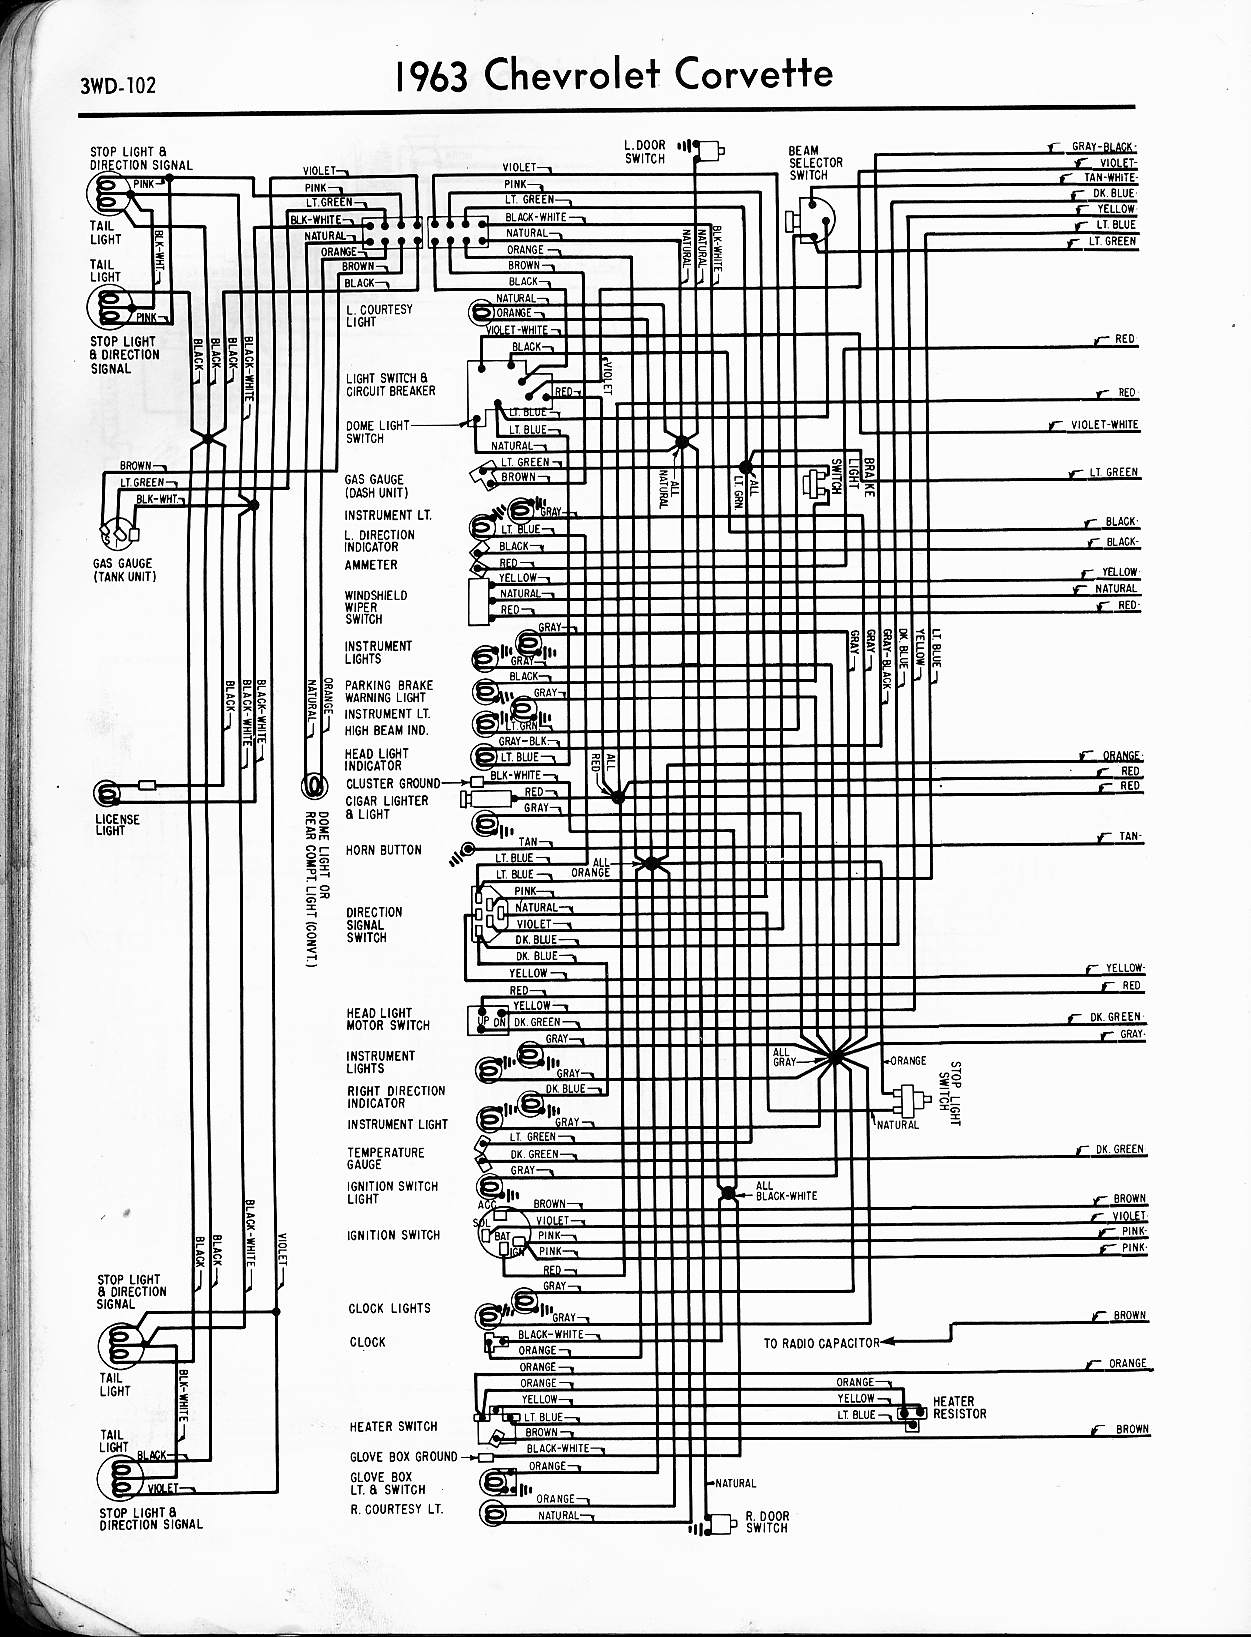 hight resolution of 63 impala wiring diagram wiring diagram portal 1966 impala wiring diagram 1963 impala wire harness diagram